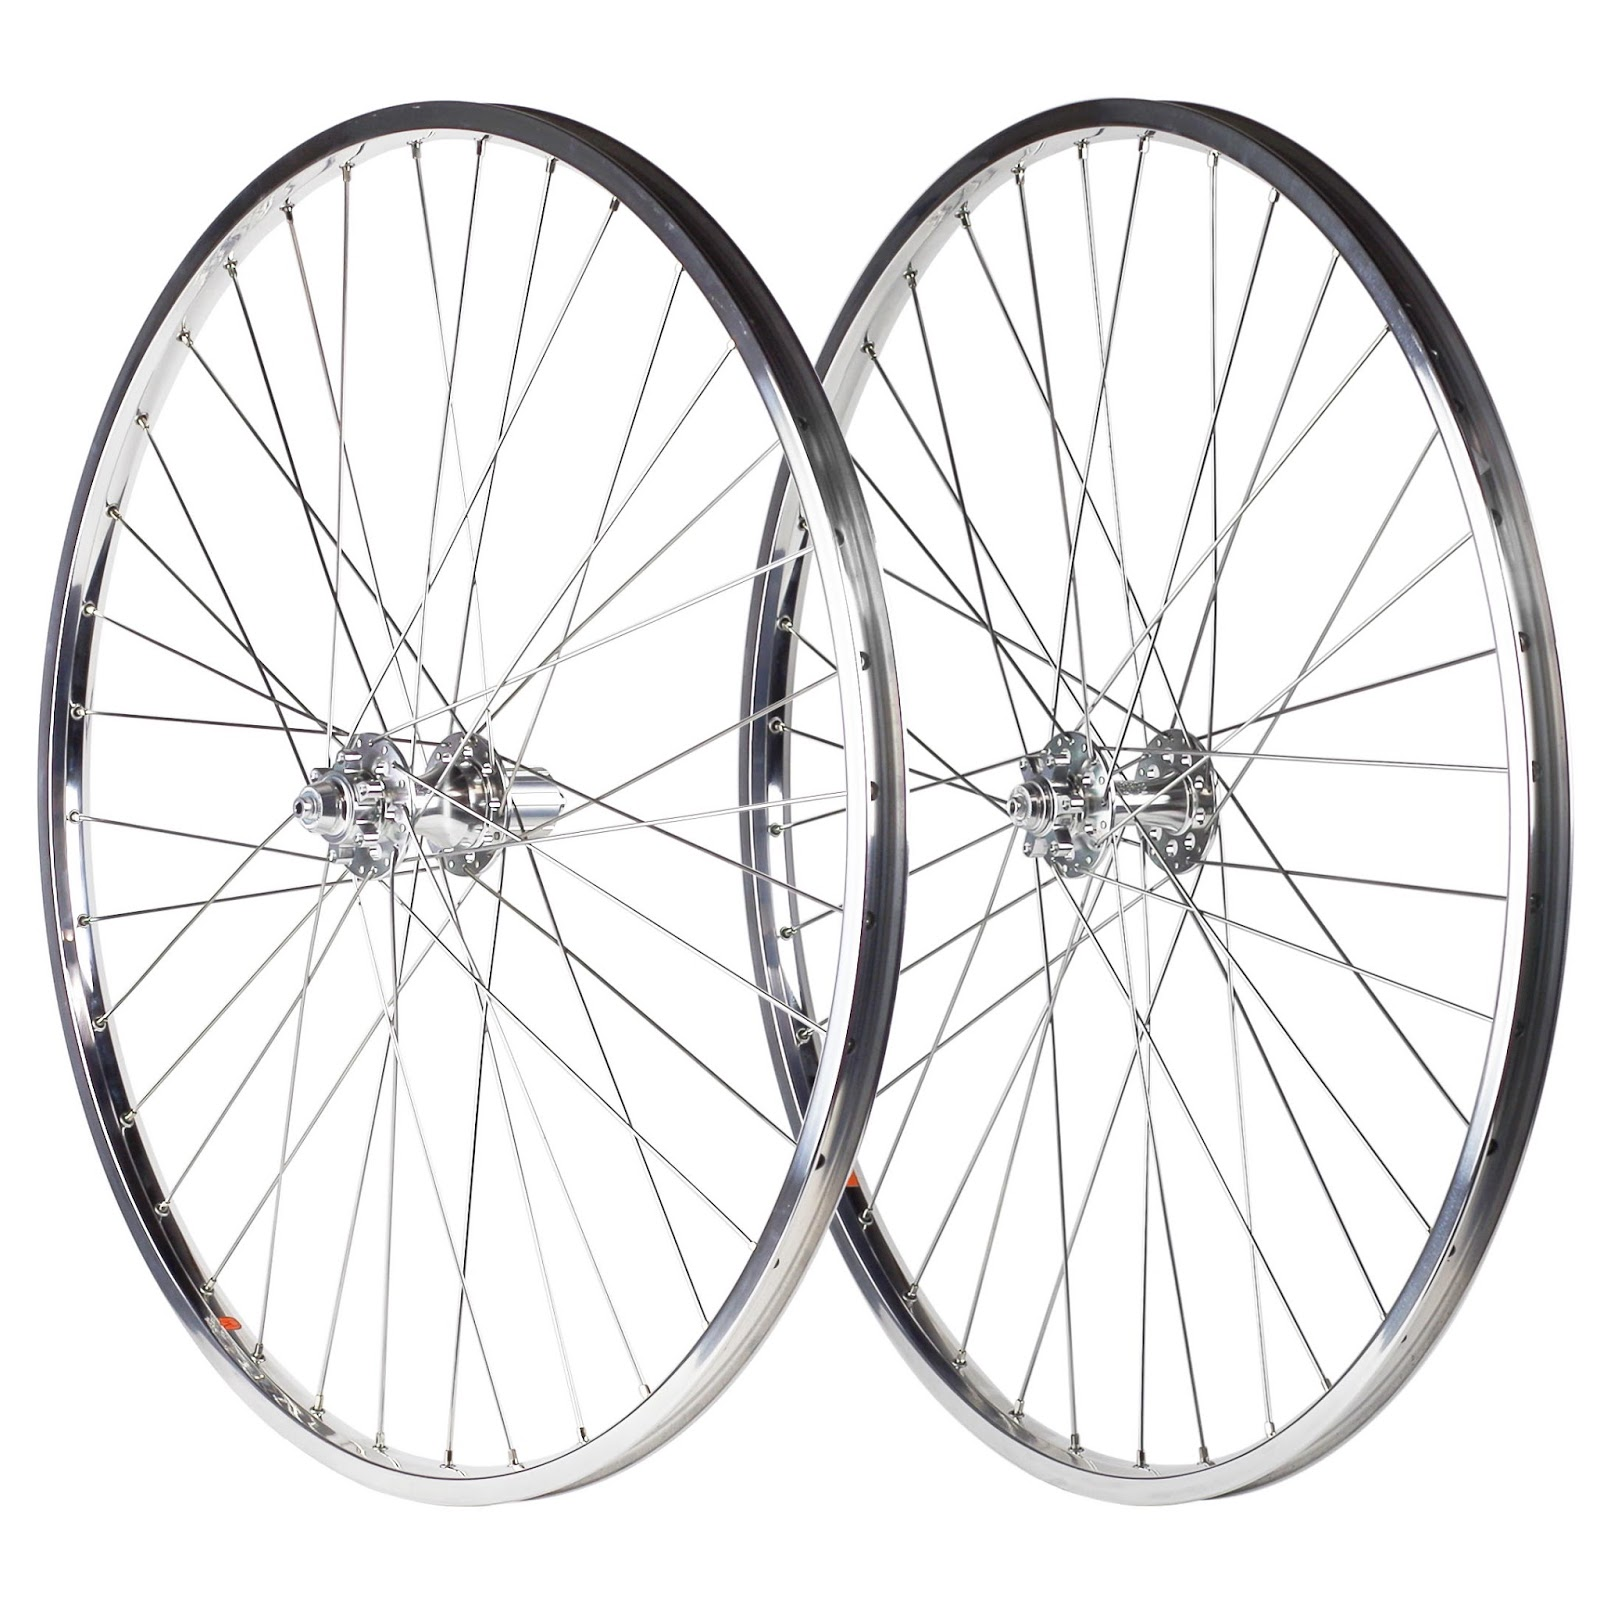 We had these wheels available as front or rear built up by our us wheel builder for a couple reasons the big one was these will be perfect for folks